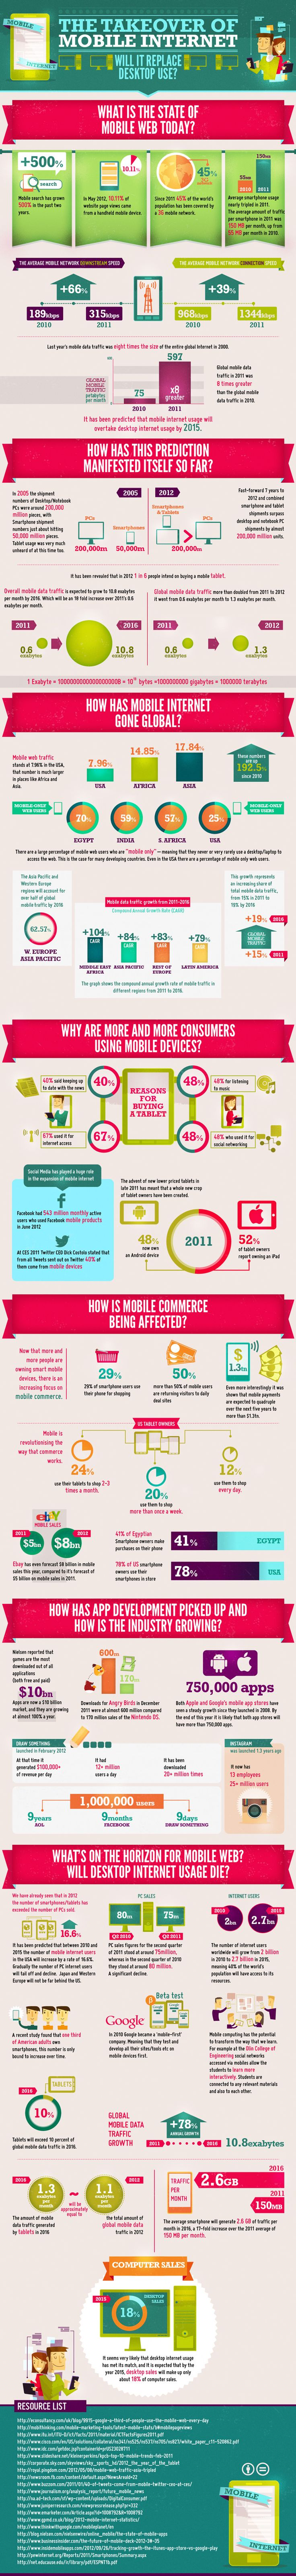 The Takeover of the Mobile Web #Infographic